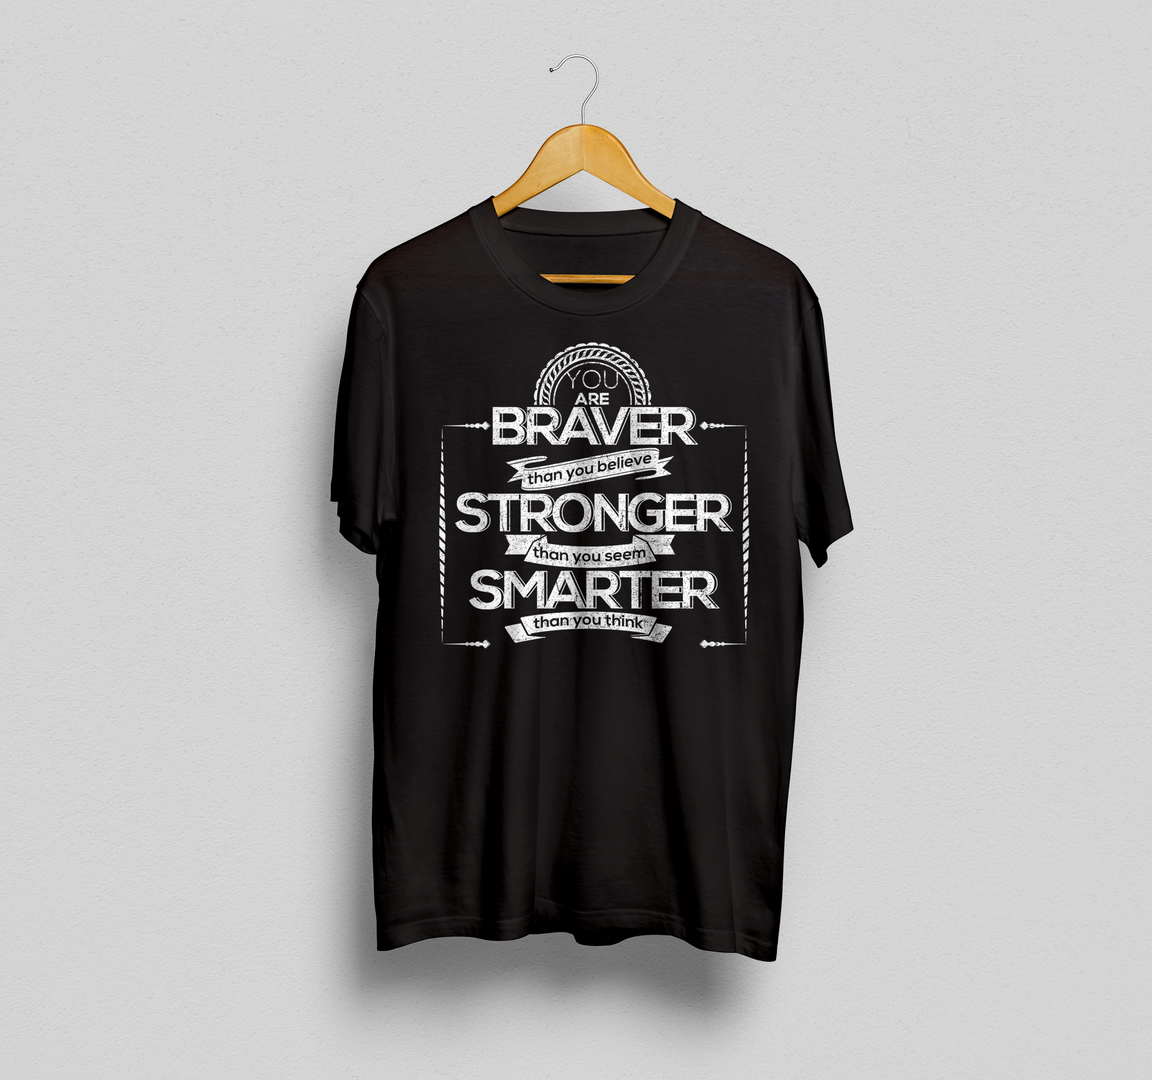 You are braver mockup.png